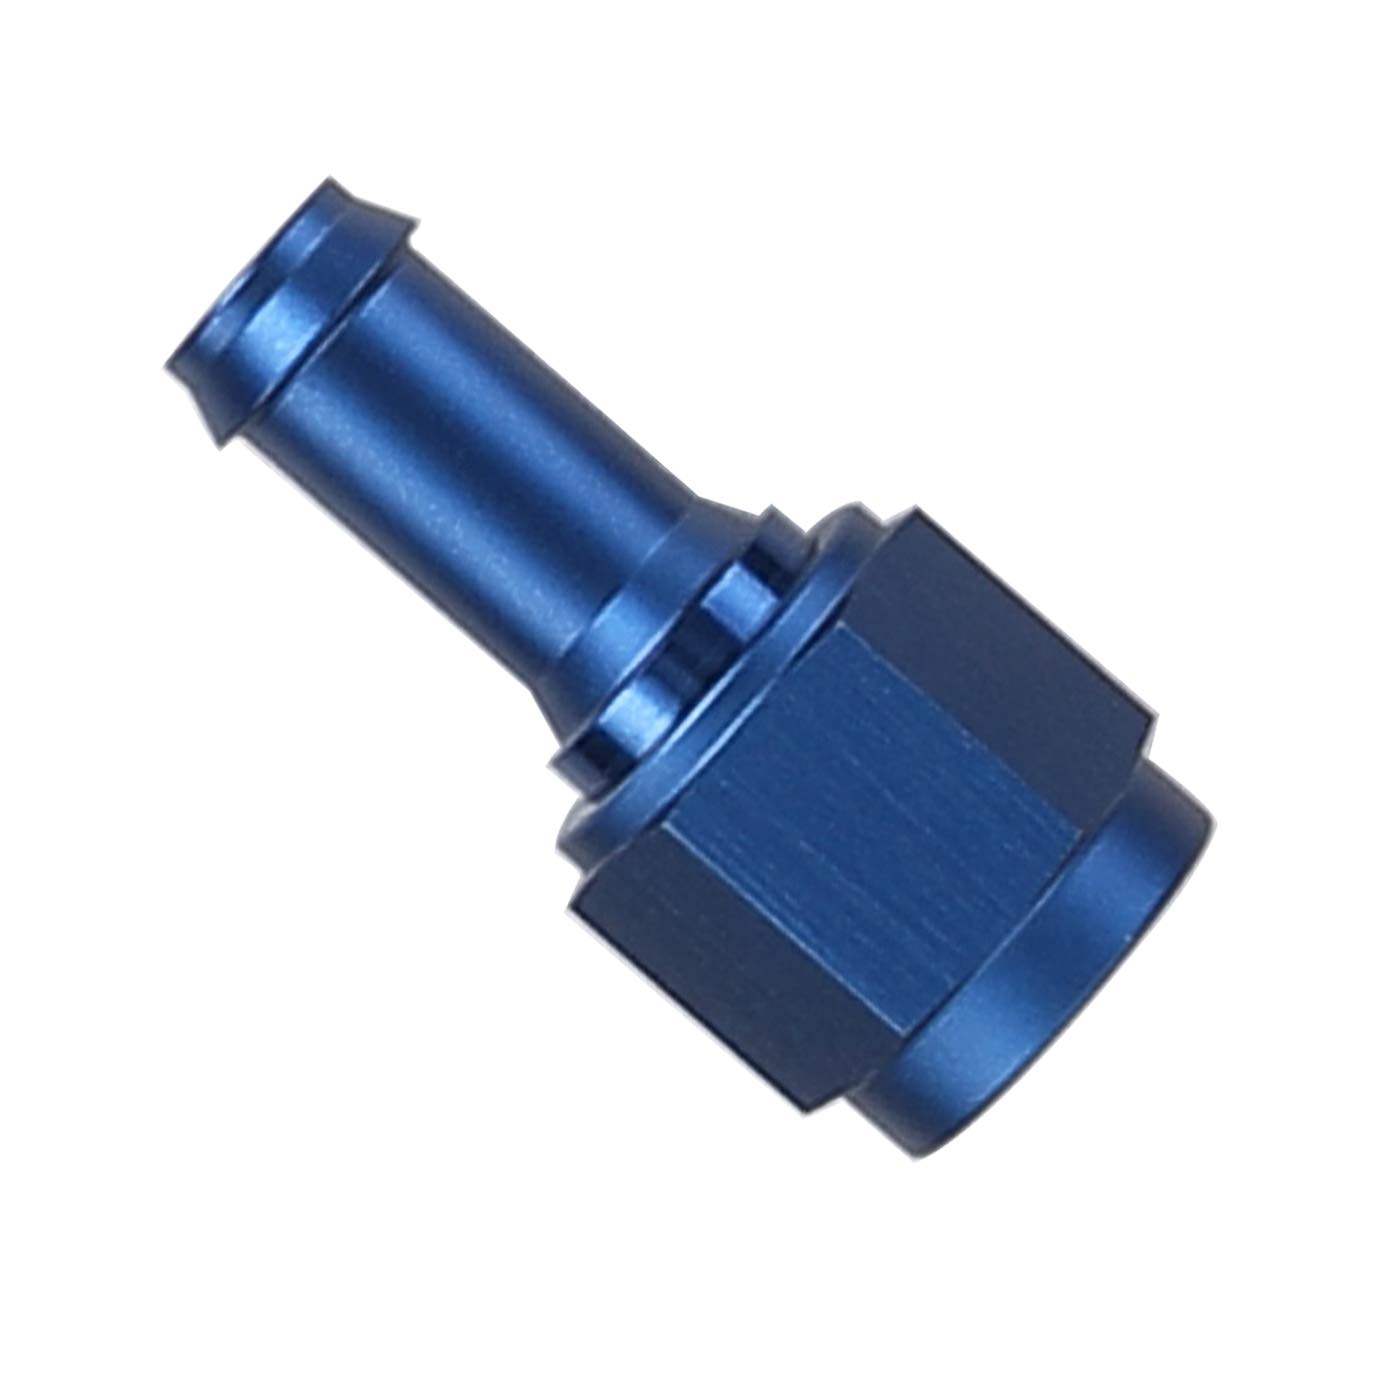 8 AN AN8 To 1//2 1//2 inch 12.7mm Barb 45 Degree Swivel Hose Fitting Aluminum Hose Barb Fuel Line Adapter Blue Anodized Female